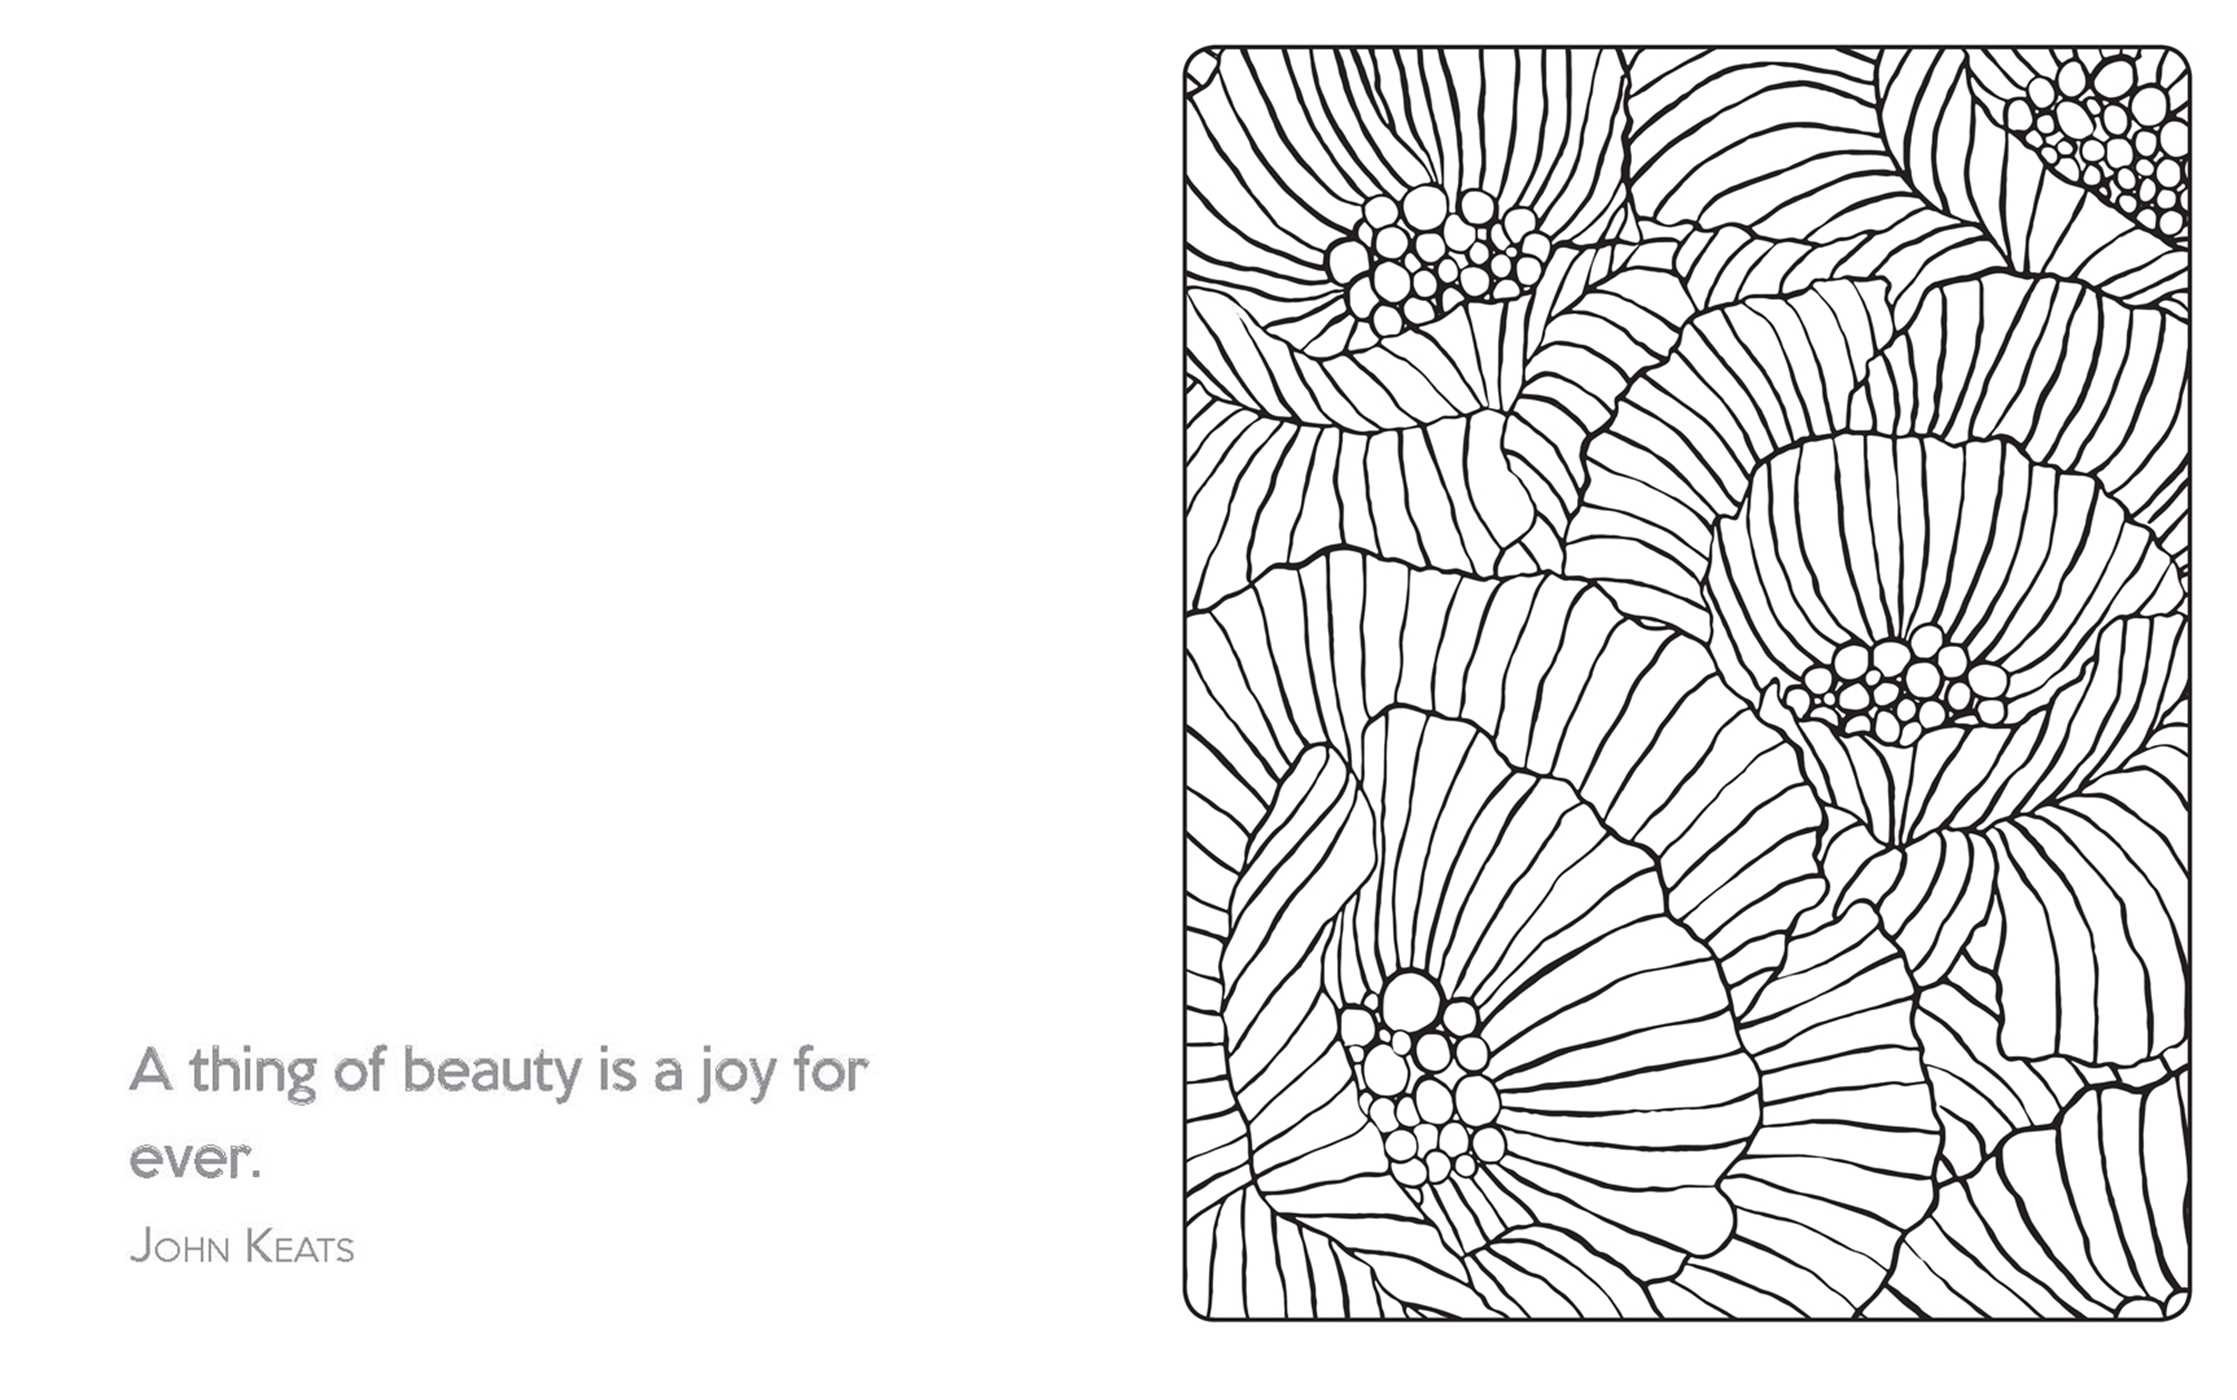 Best ideas about Calming Coloring Sheets For Kids . Save or Pin The Little Book of Calm Coloring Now.